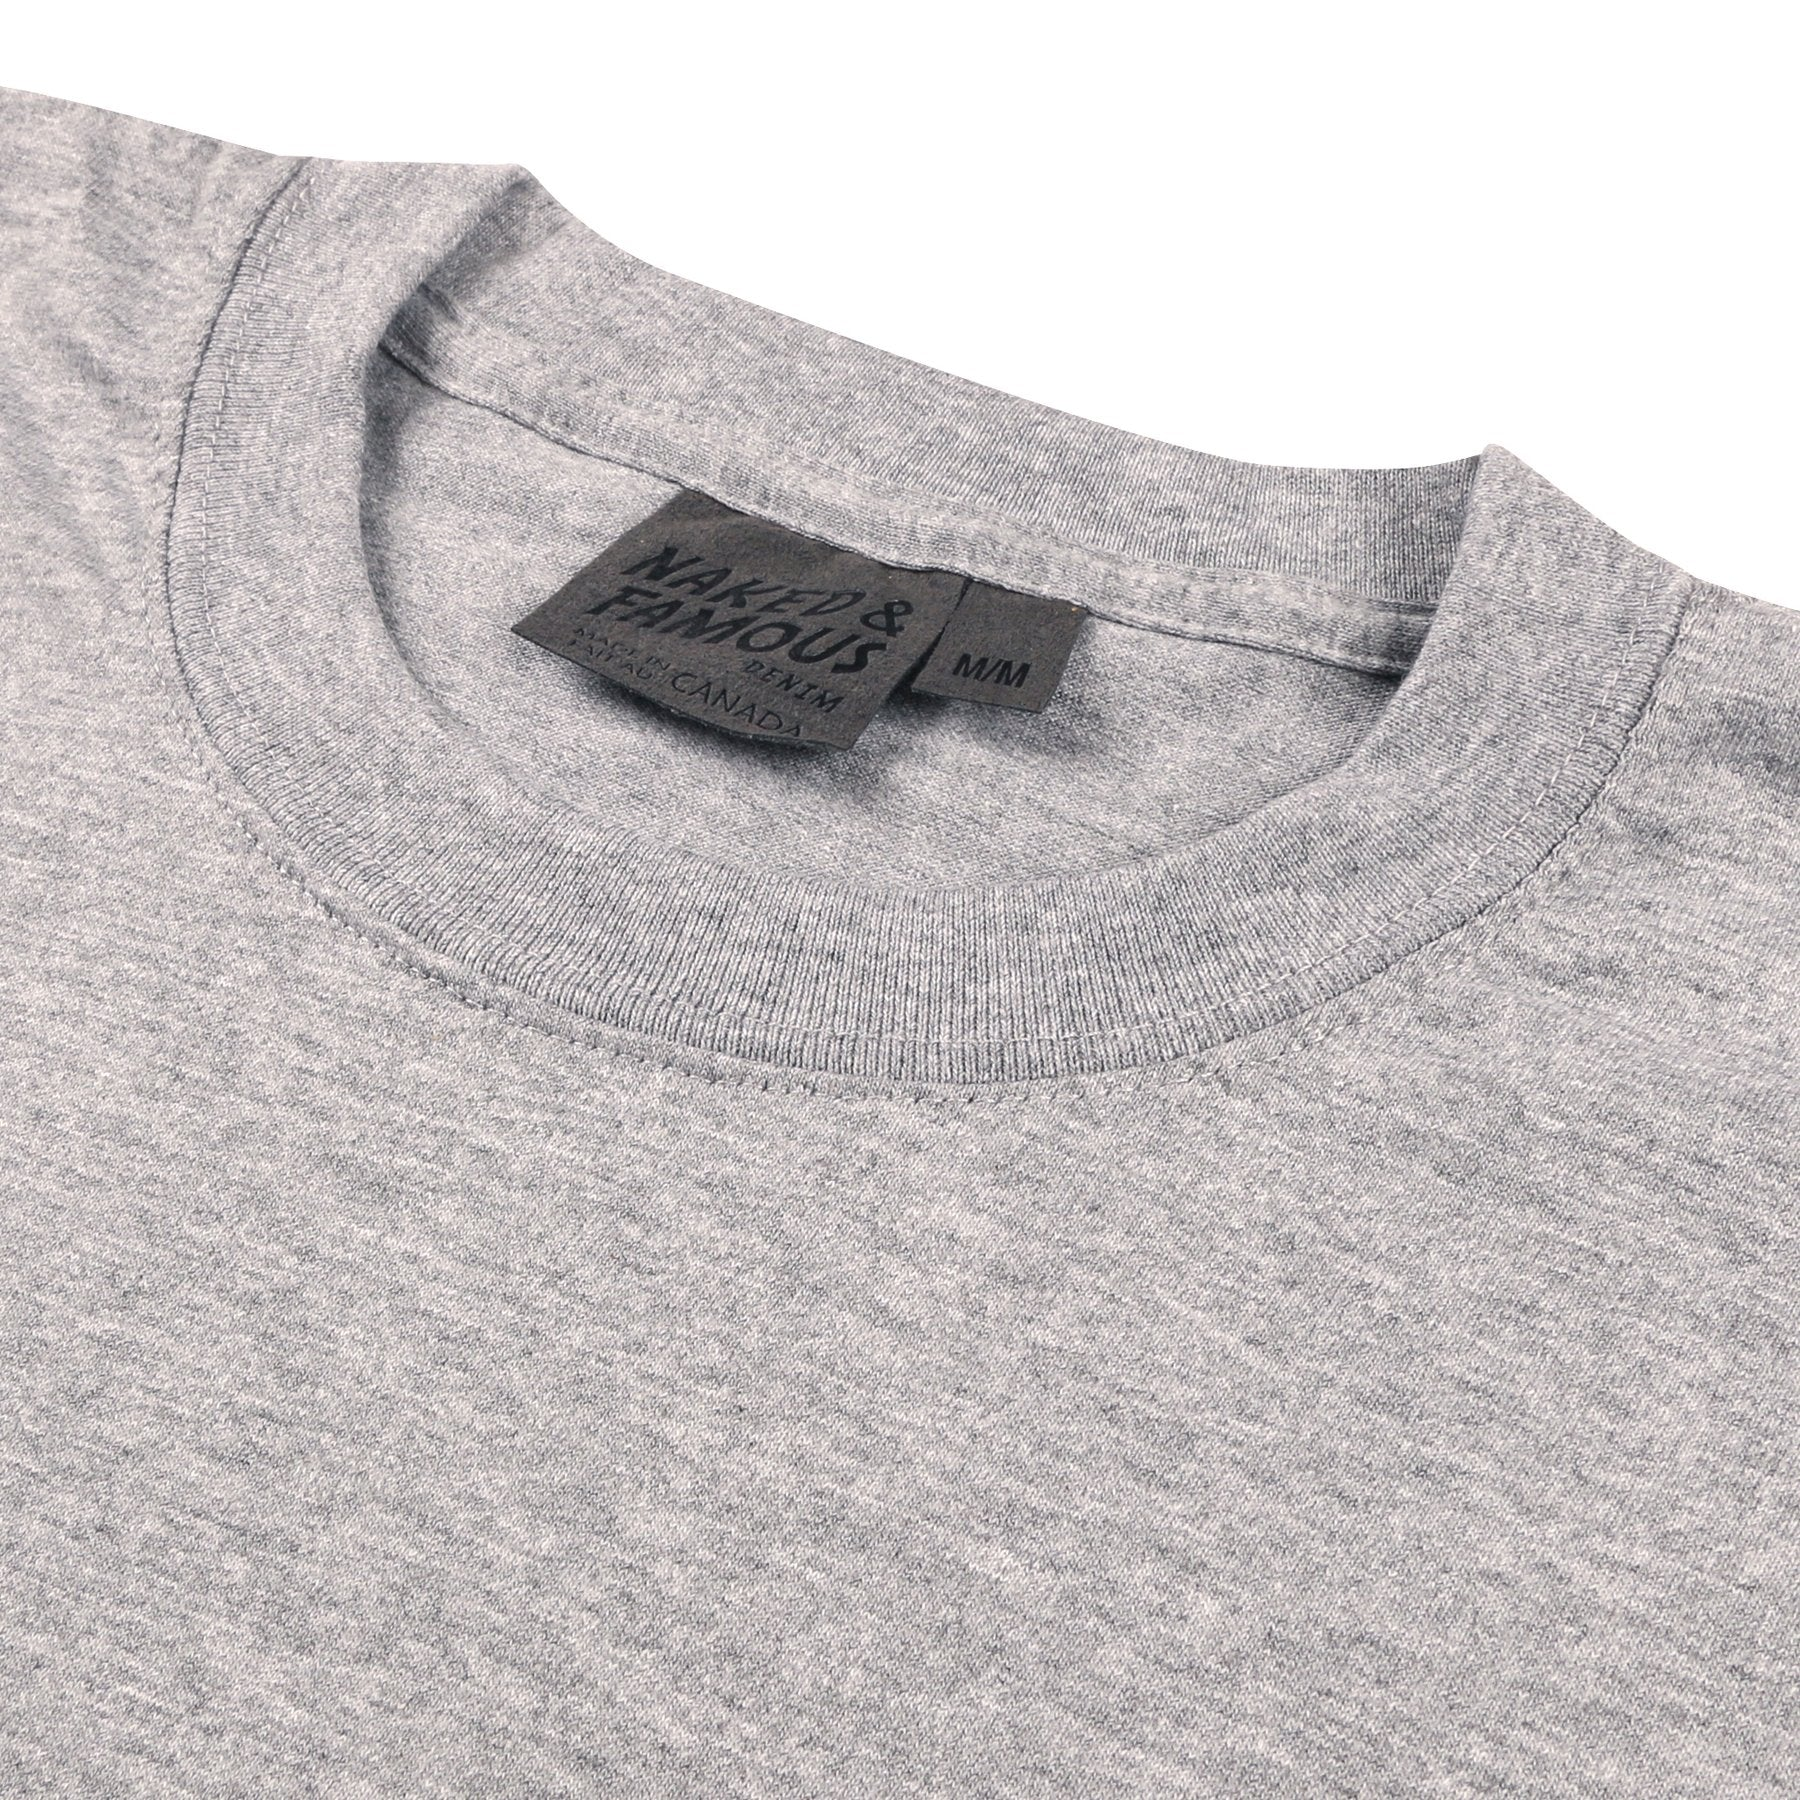 N&F - Knit T-Shirt - The Populess Company